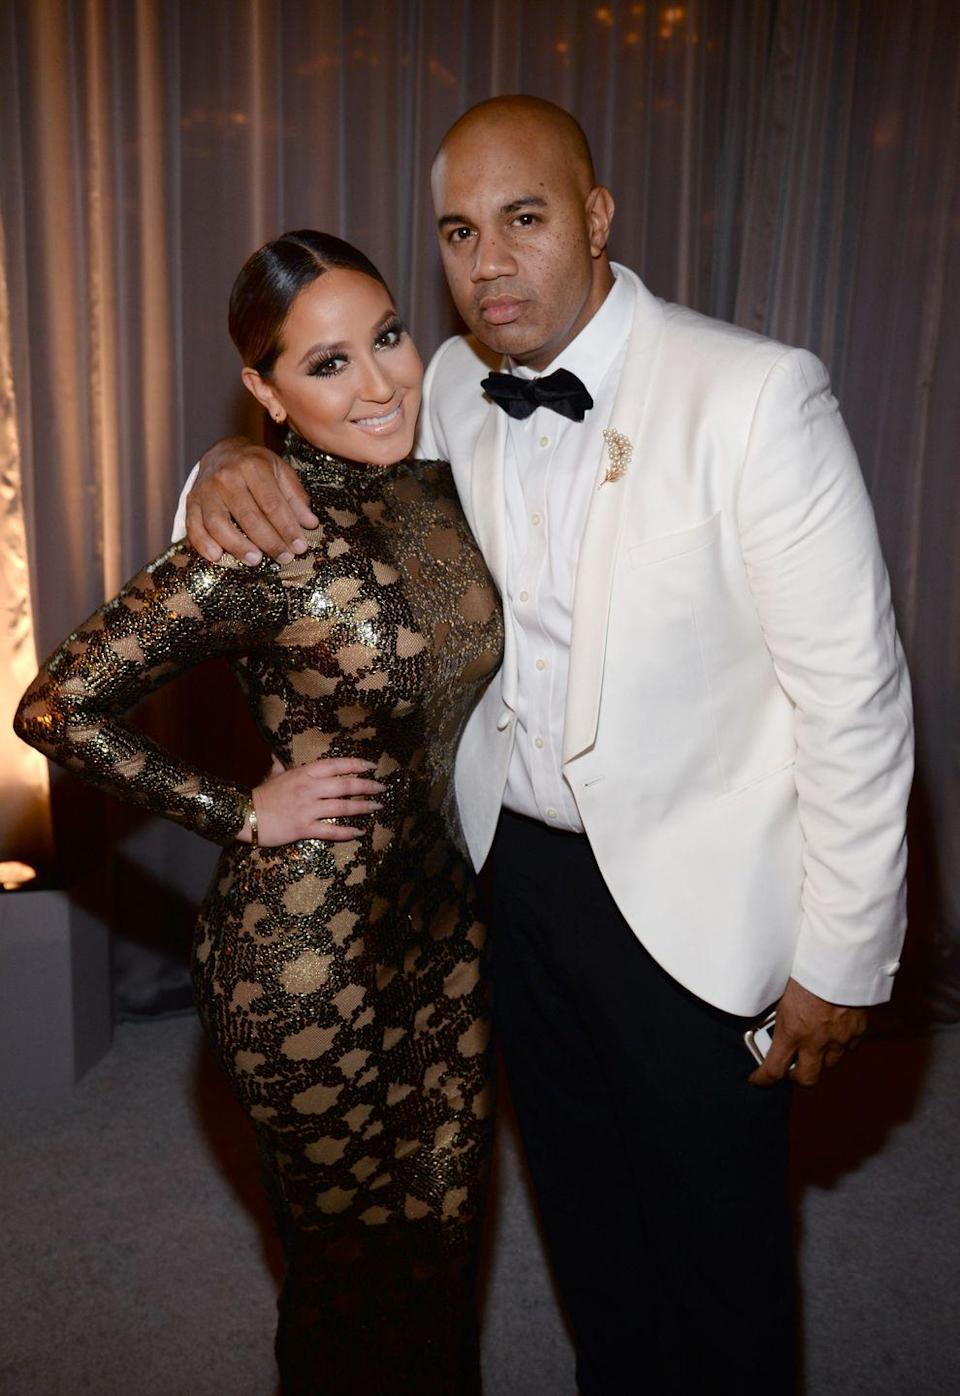 """<p><em>The Real </em>co-host announced <a href=""""https://people.com/tv/adrienne-bailon-the-real-host-and-lenny-santiago-end-engagement/"""" rel=""""nofollow noopener"""" target=""""_blank"""" data-ylk=""""slk:the end of her engagement"""" class=""""link rapid-noclick-resp"""">the end of her engagement</a> to the Roc Nation music exec on her daytime talk show in 2015. """"We're gonna be great friends forever, and I think it was a hard decision to make when you're with somebody for such a long time,"""" she told the live studio audience.</p>"""